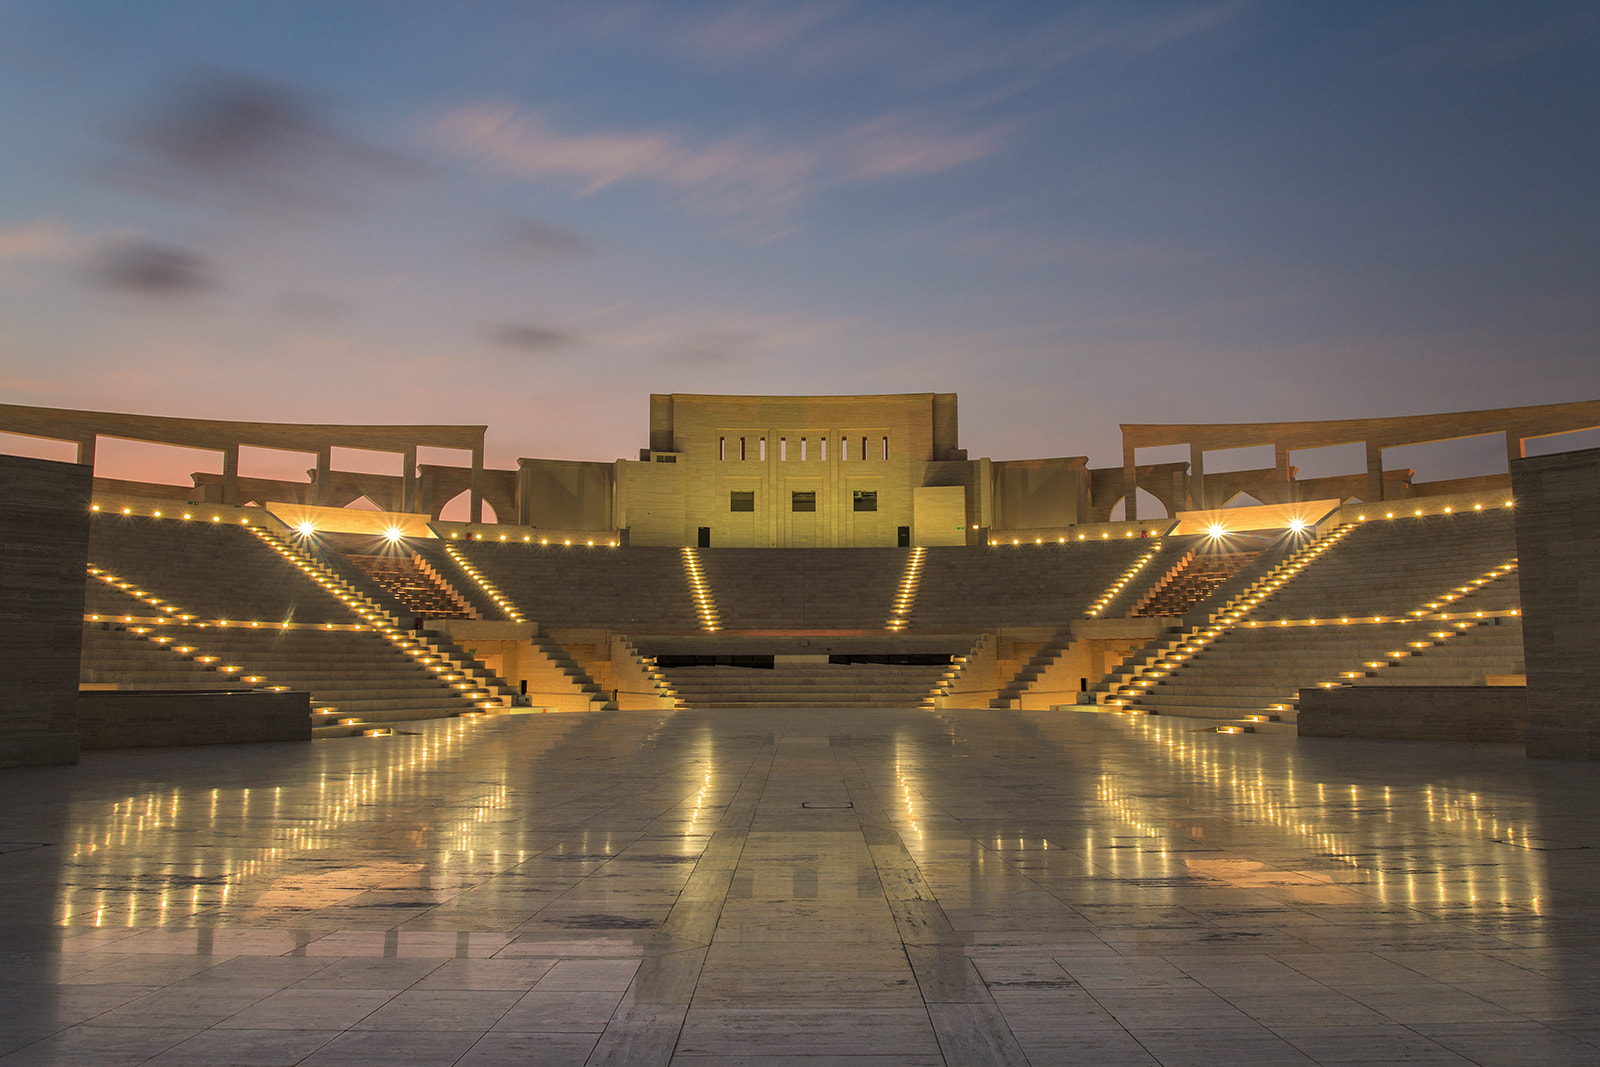 Photograph Amphitheater by Helminadia Ranford on 500px